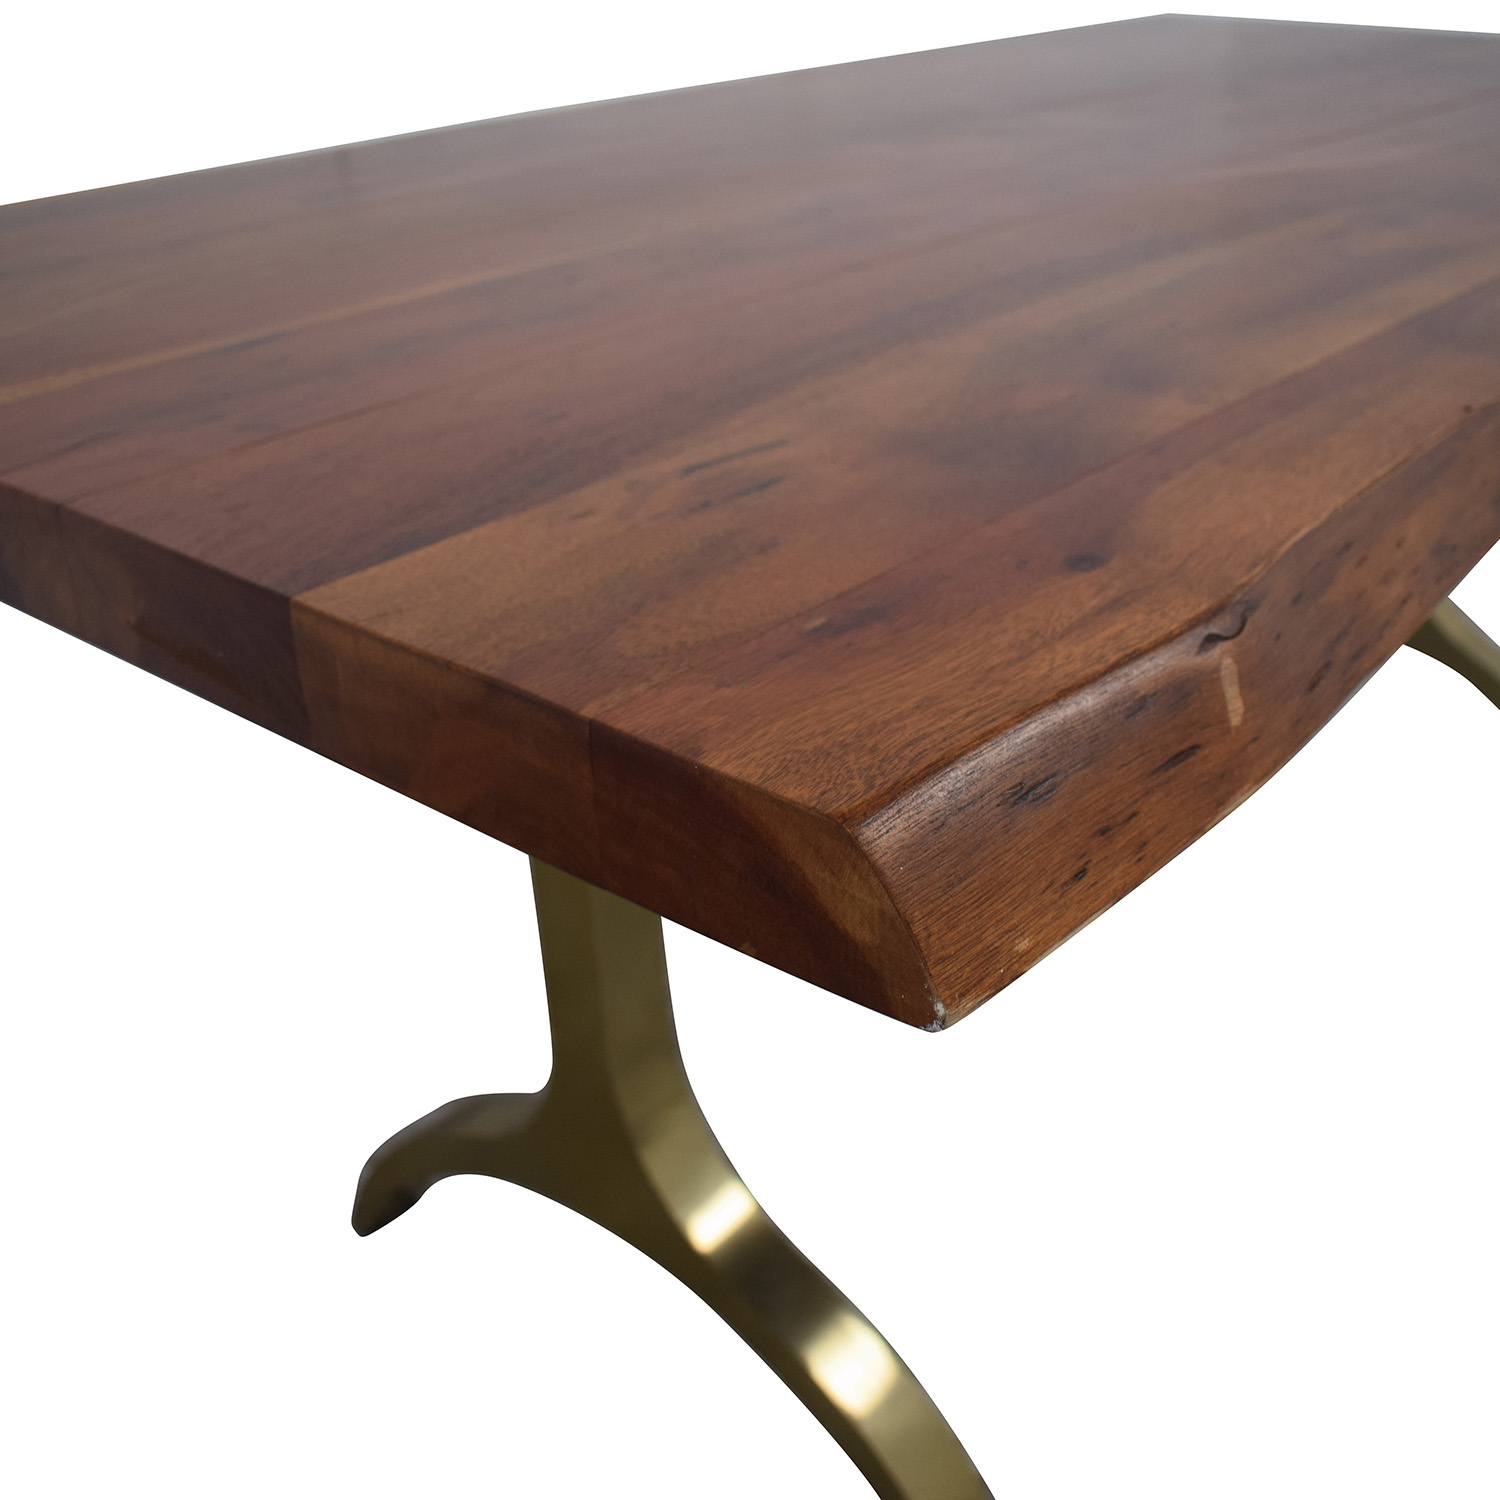 West Elm West Elm Live Edge Dining Table used